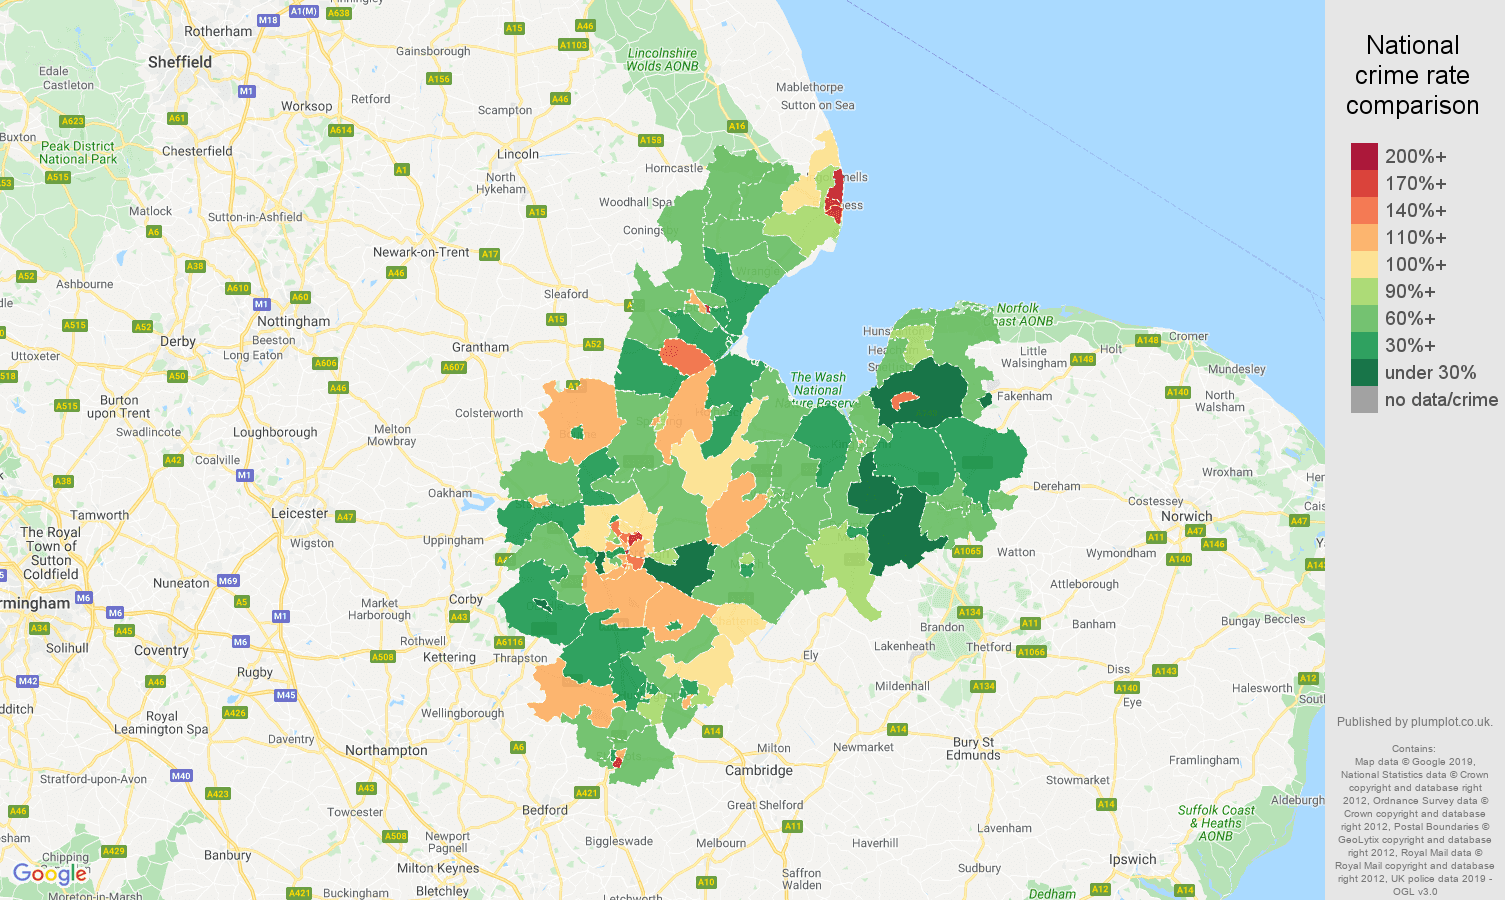 Peterborough other theft crime rate comparison map